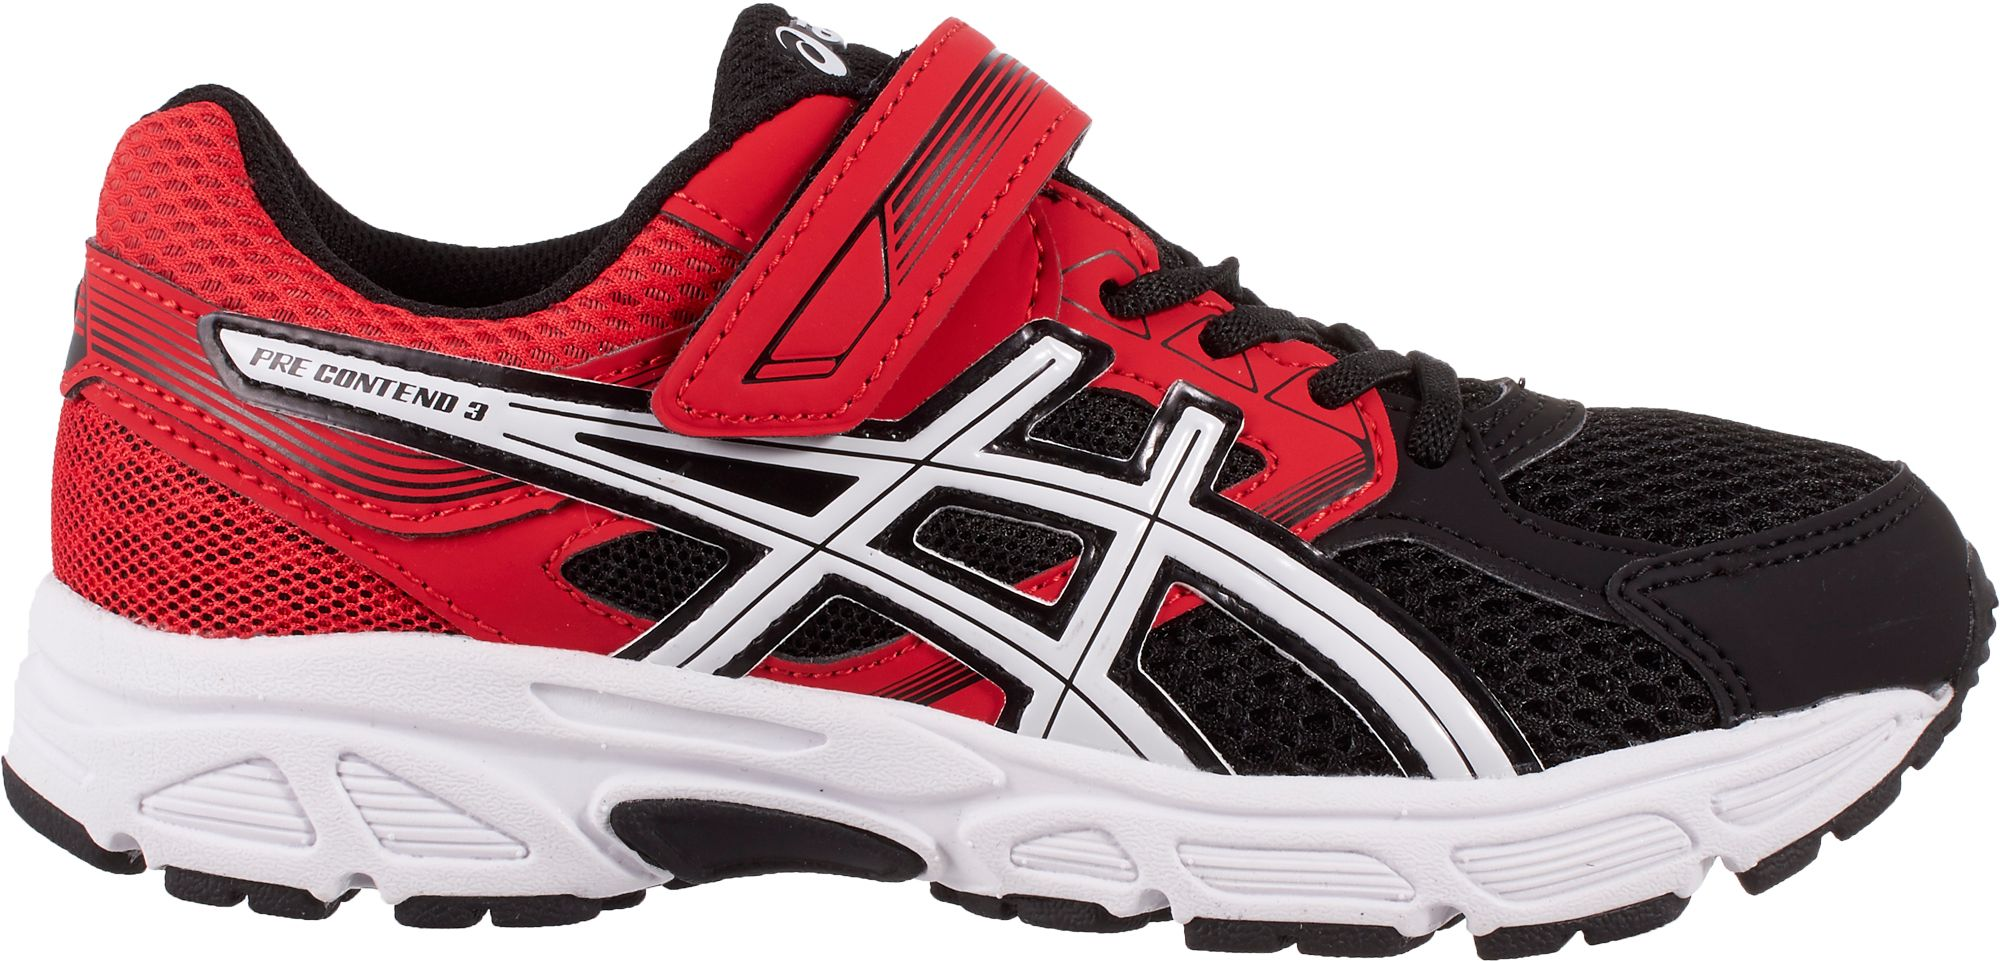 a5c60c51779 ASICS Kids Grade School GEL Contend 3 Running Shoes DICKS Sporting Goods  durable modeling